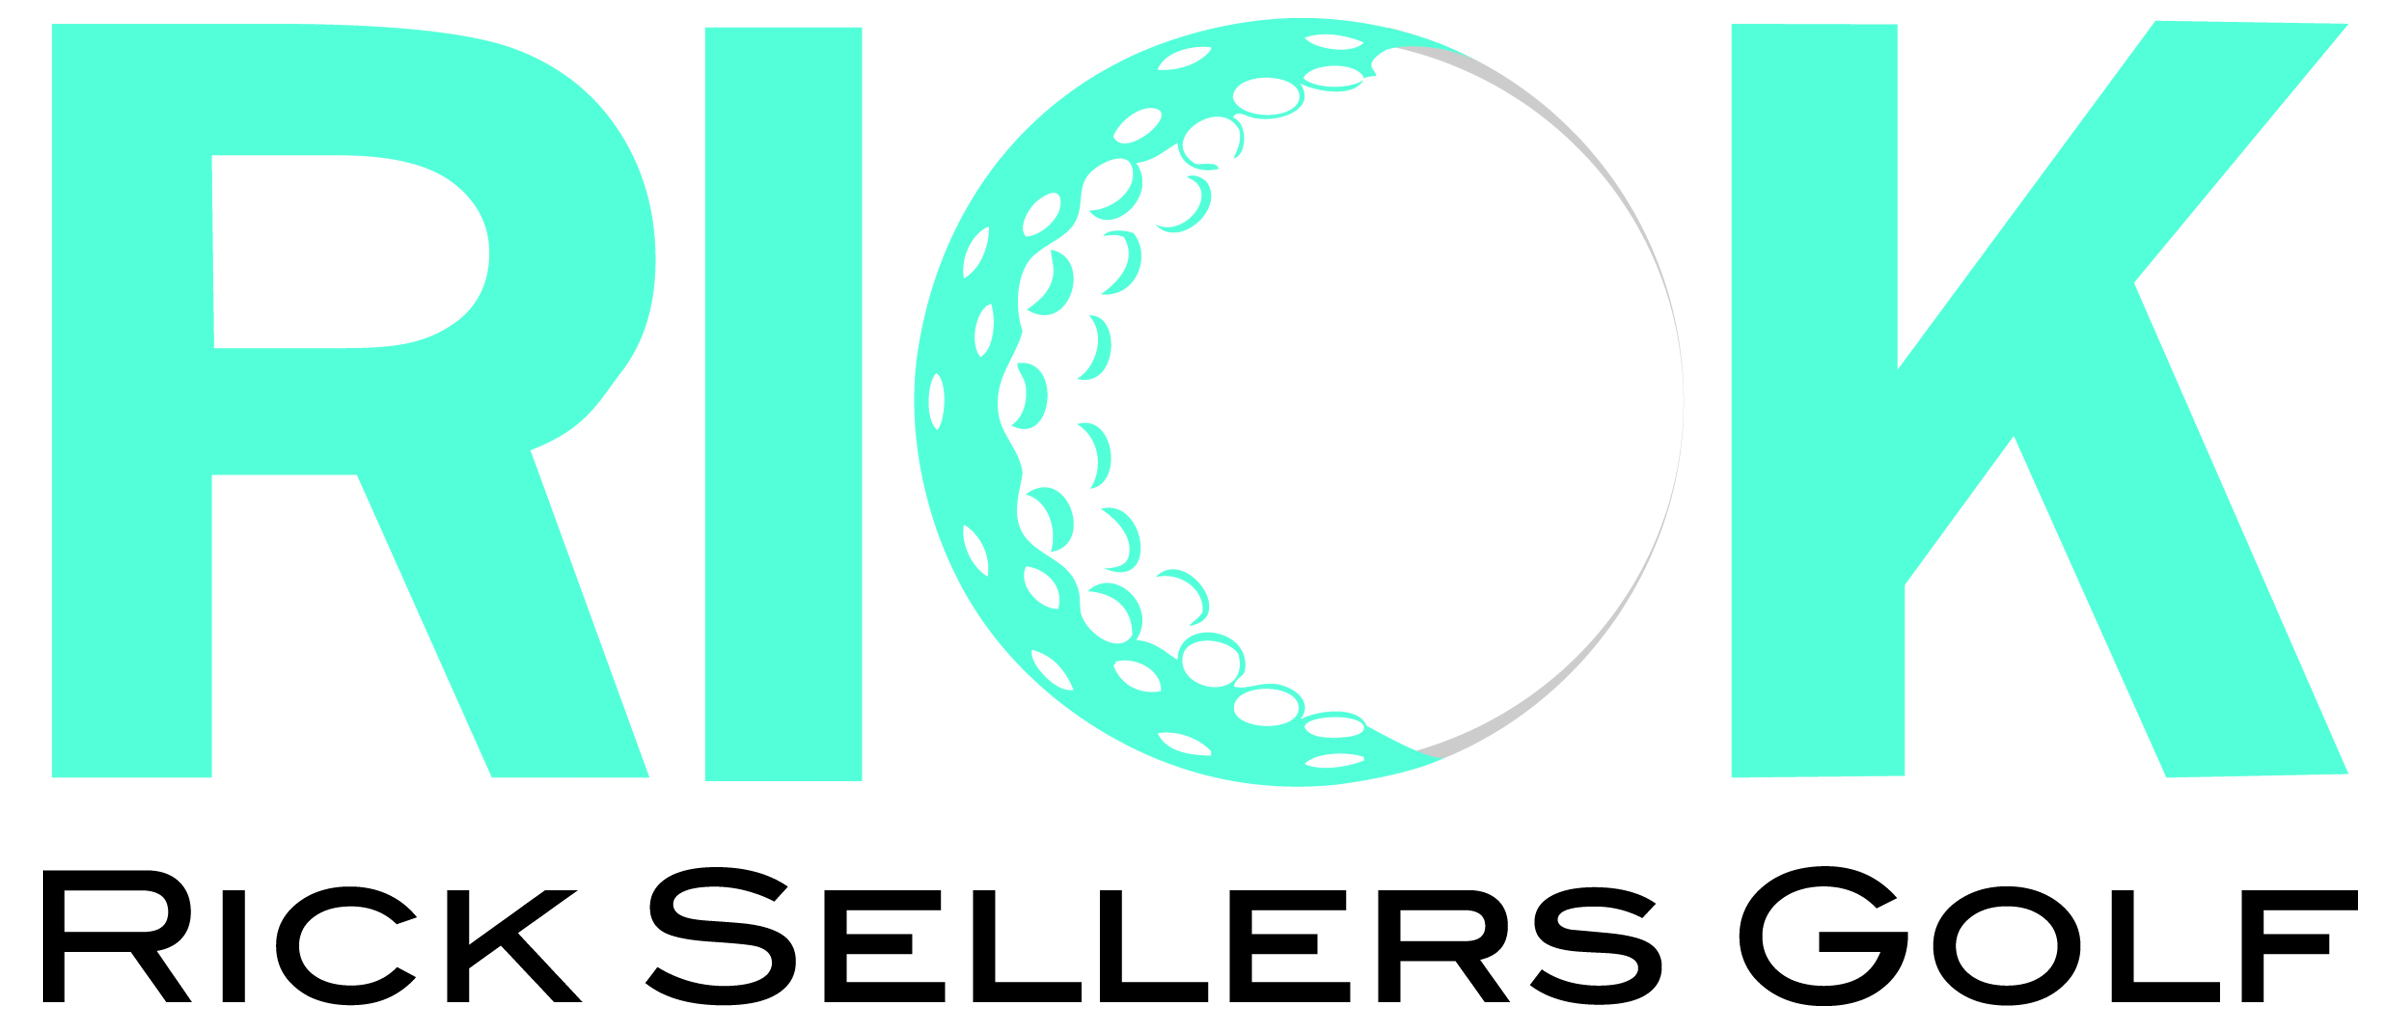 Hole Sponsor - Rick Sellers Golf (large).jpg